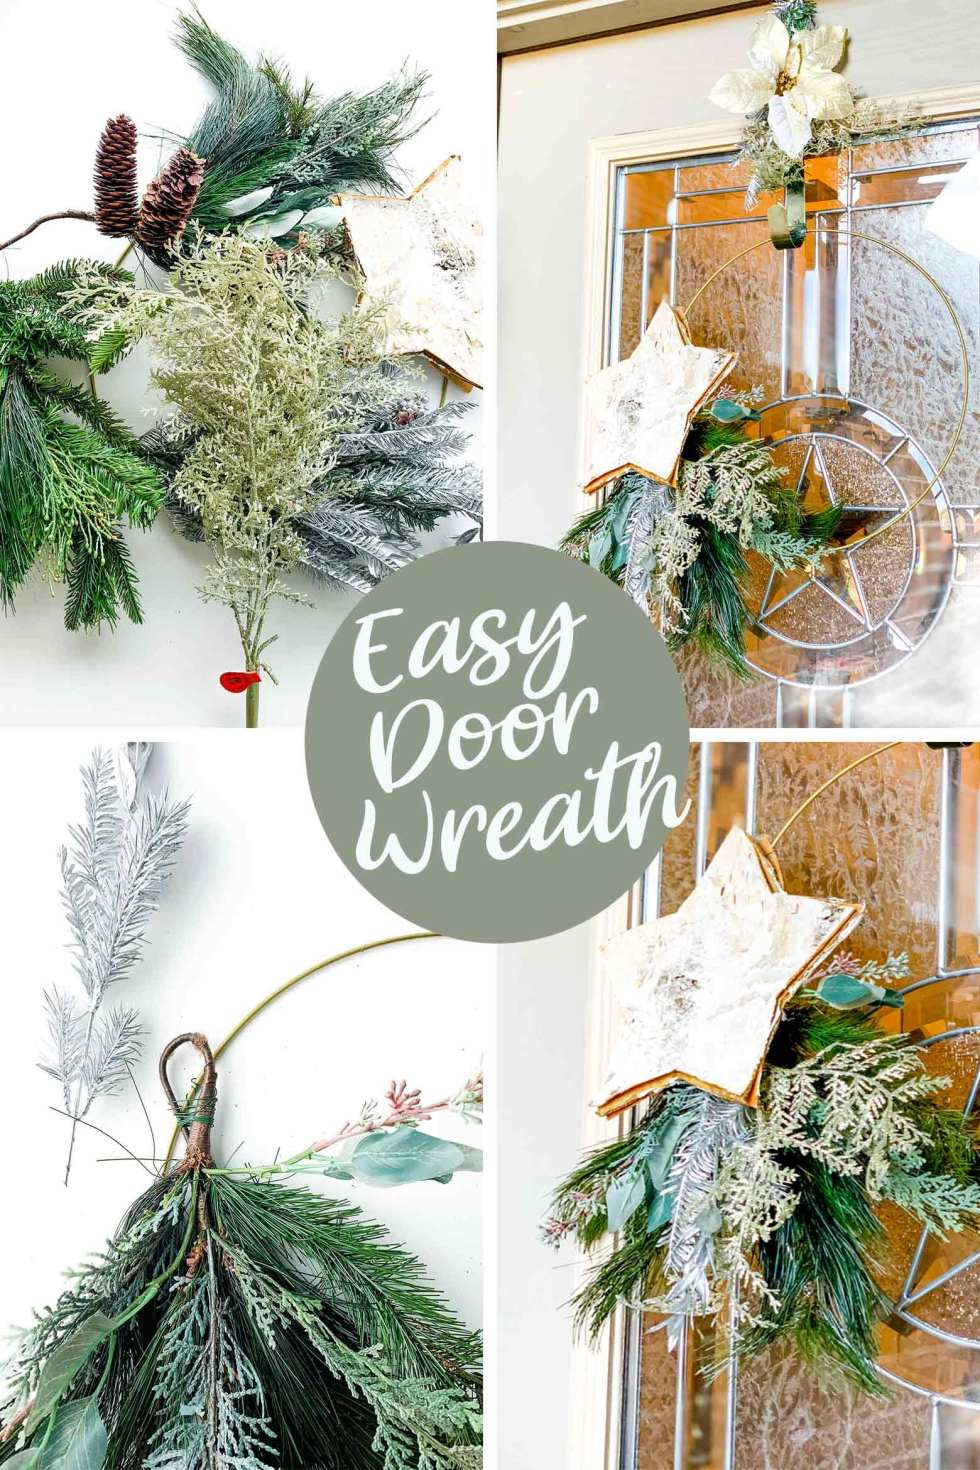 This classy door wreath is shockingly simple to make and requires minimal supplies. Make your own modern farmhouse style gold metal hoop wreath and be on trend!  via @mrsmajorhoff